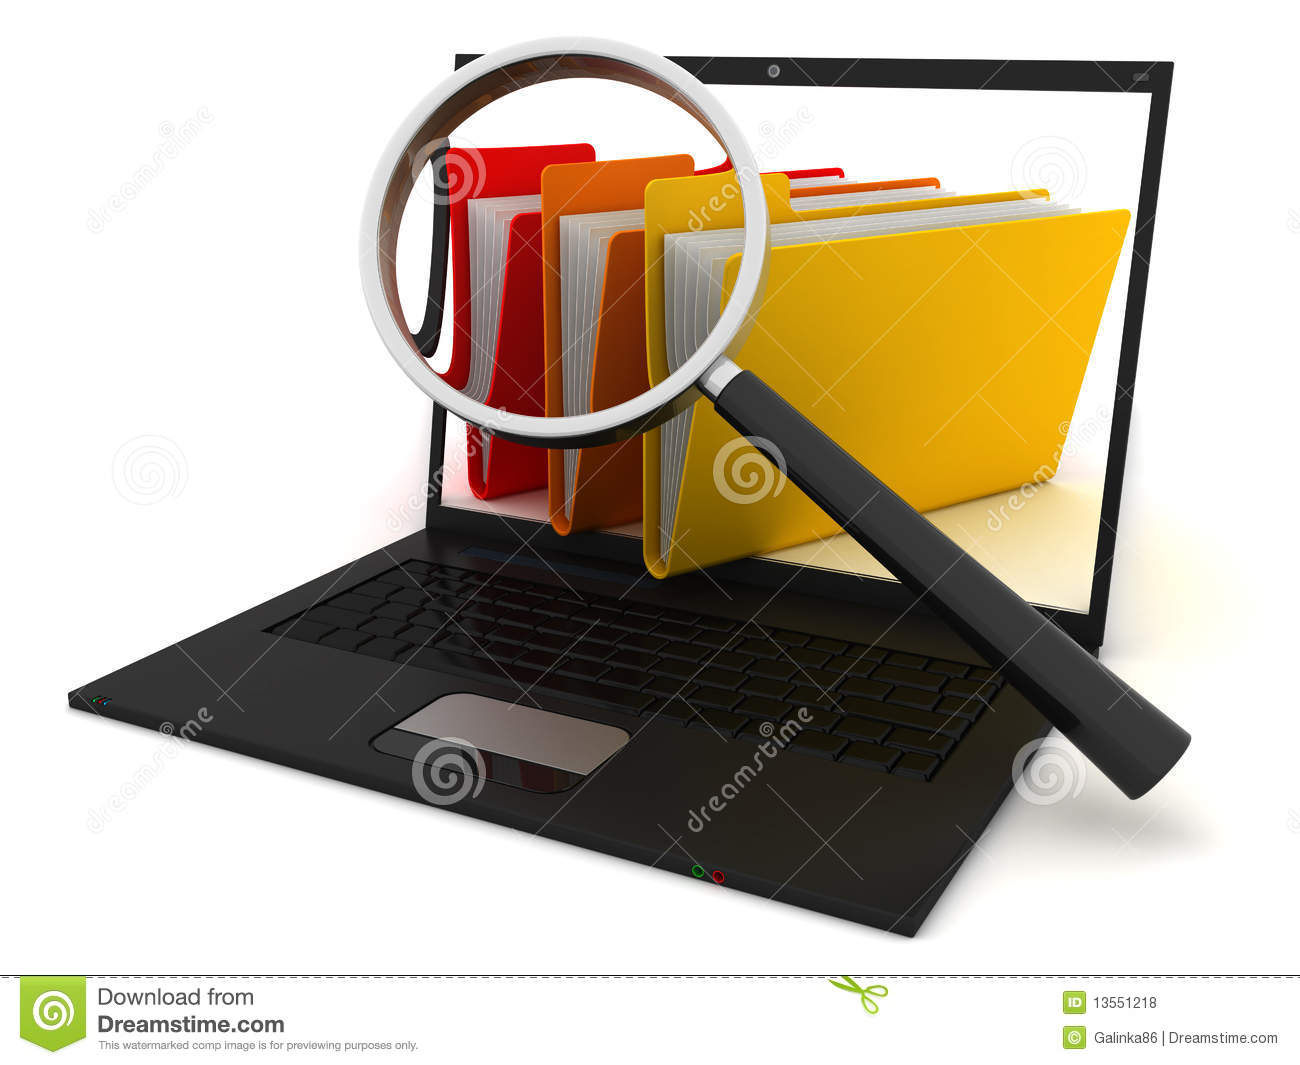 Searching The Computer Royalty Free Stock Photos - Image: 13551218